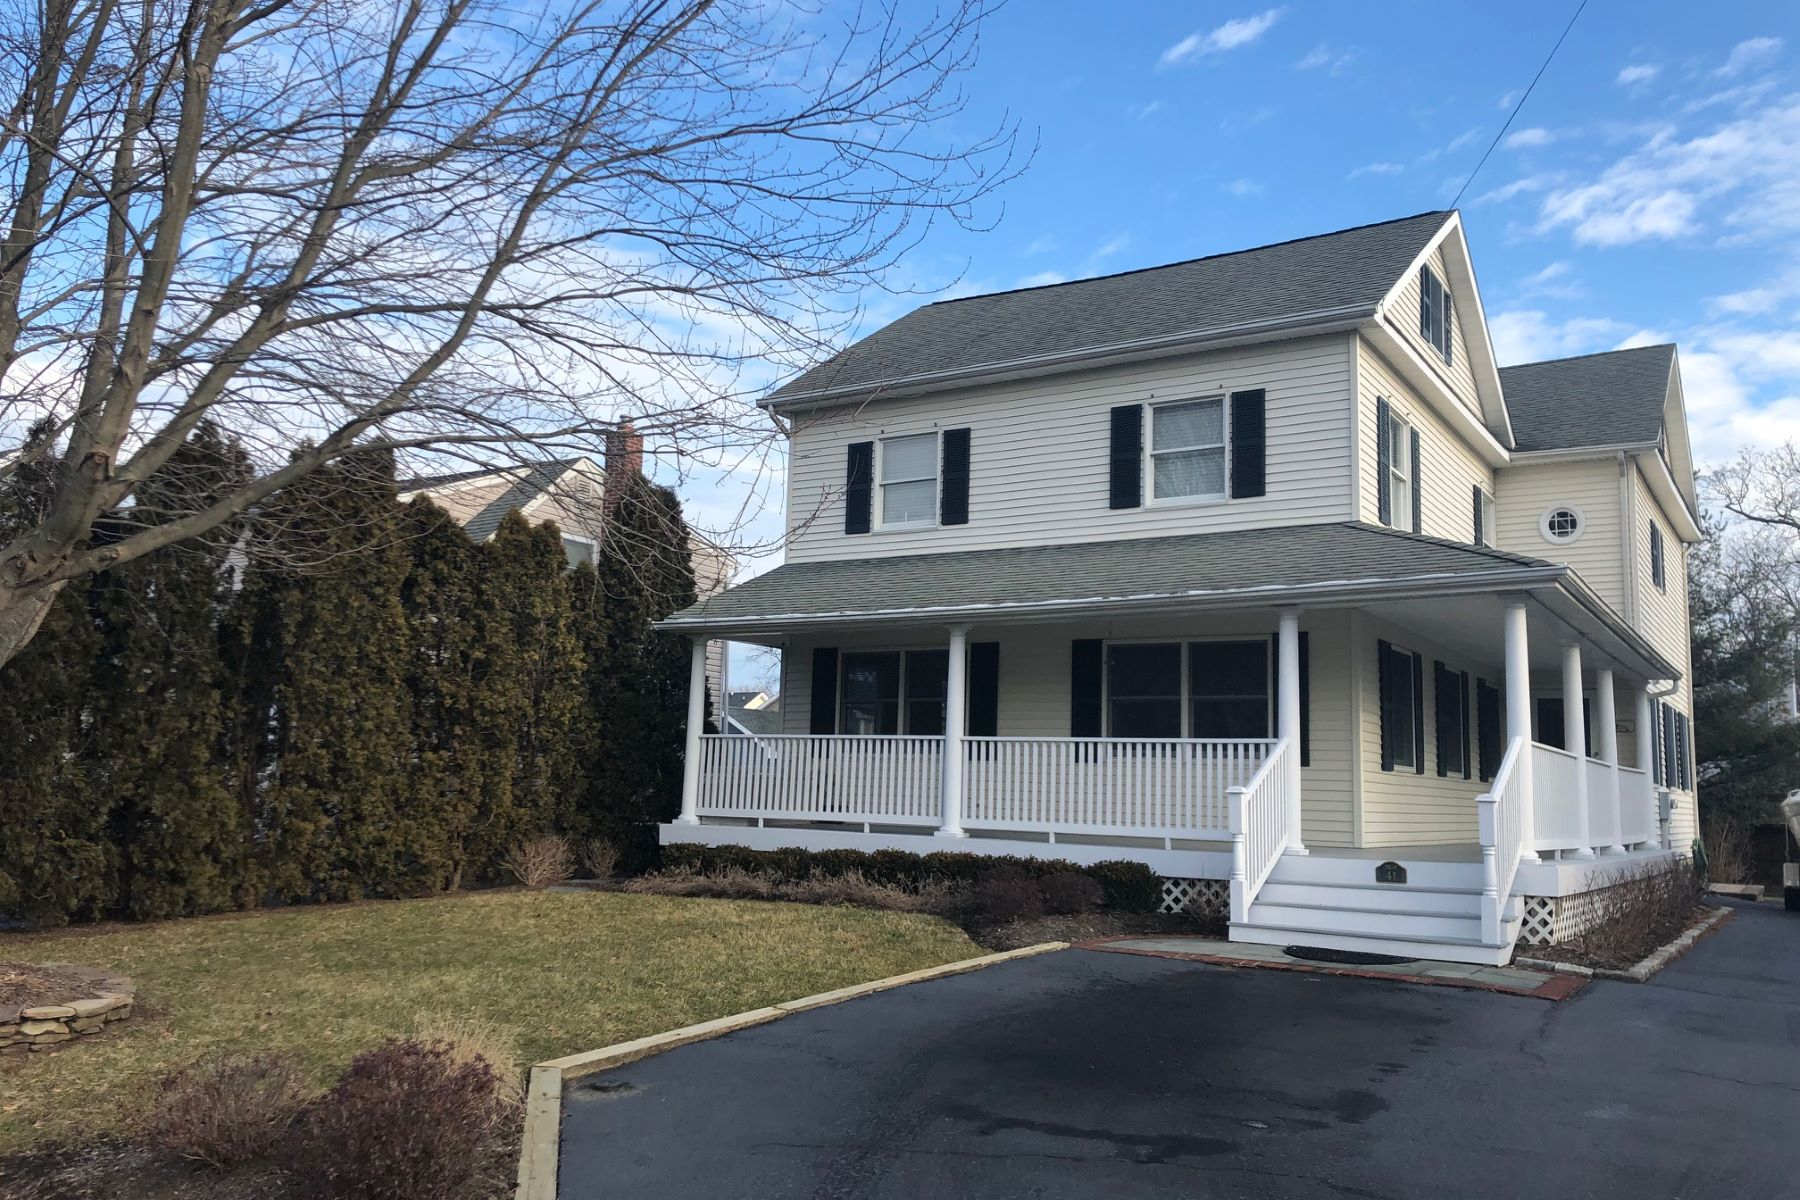 Single Family Home for Sale at Fair Haven Colonial 41 William St, Fair Haven, New Jersey 07704 United States